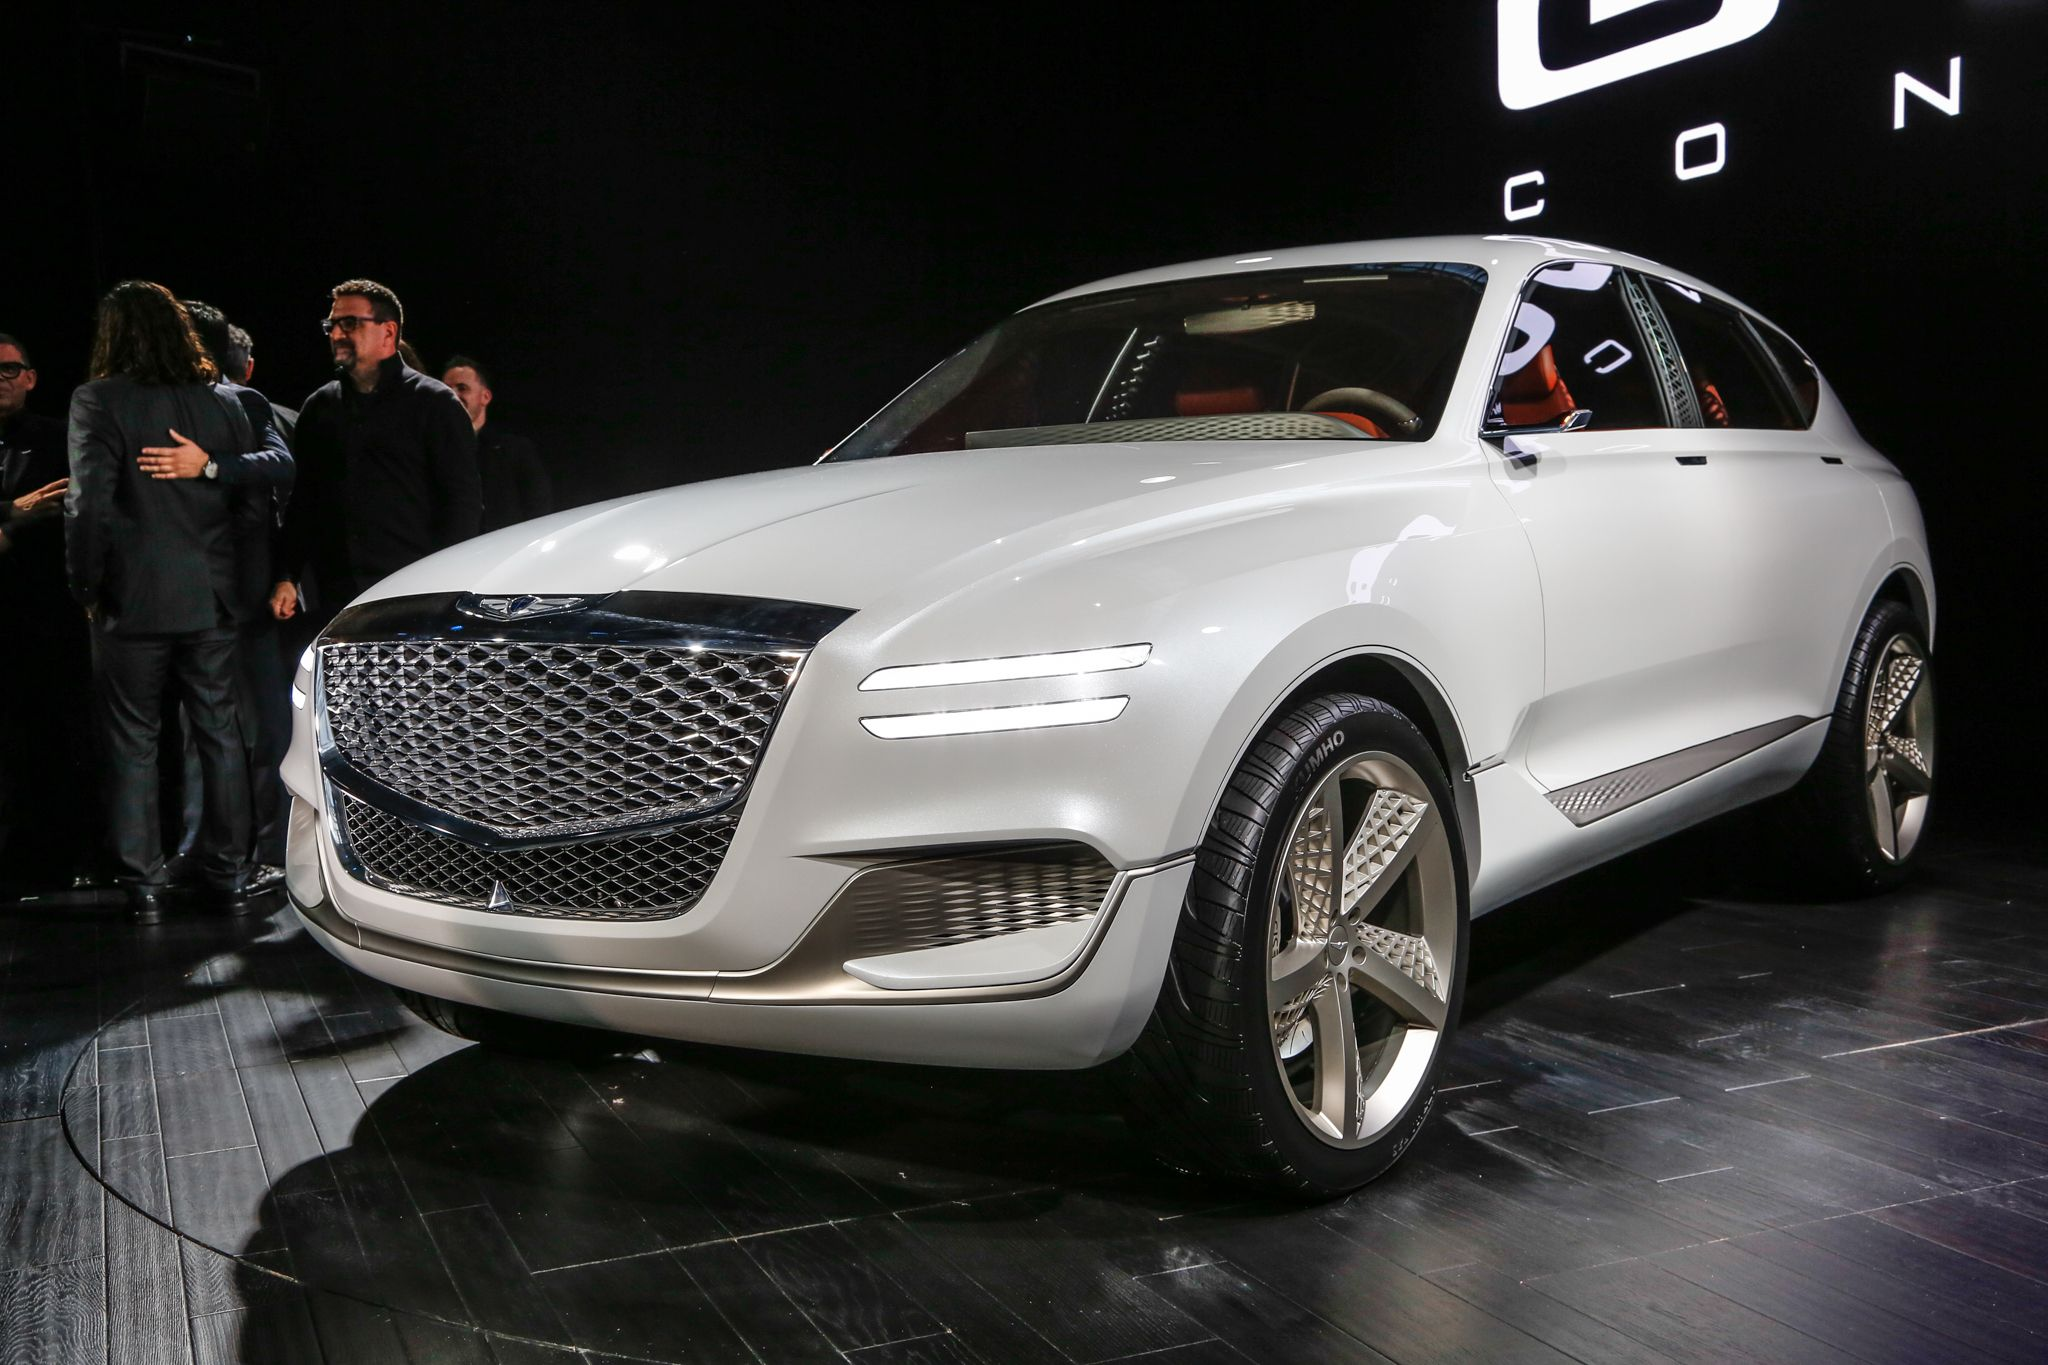 New Genesis Concept Suv Amazing Genesis Cars Automobile Concept